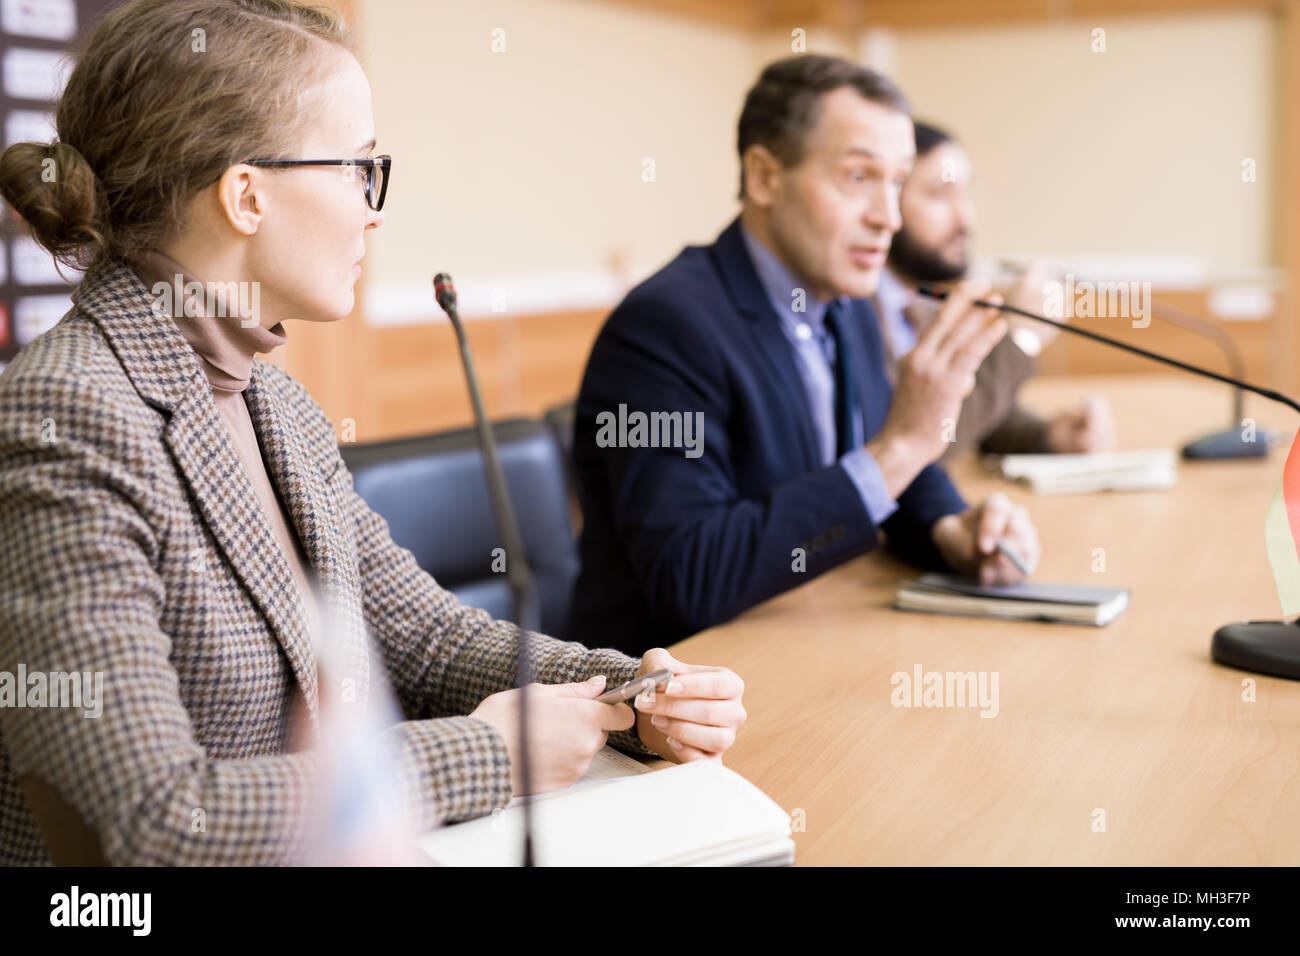 Group of Business People in Conference - Stock Image